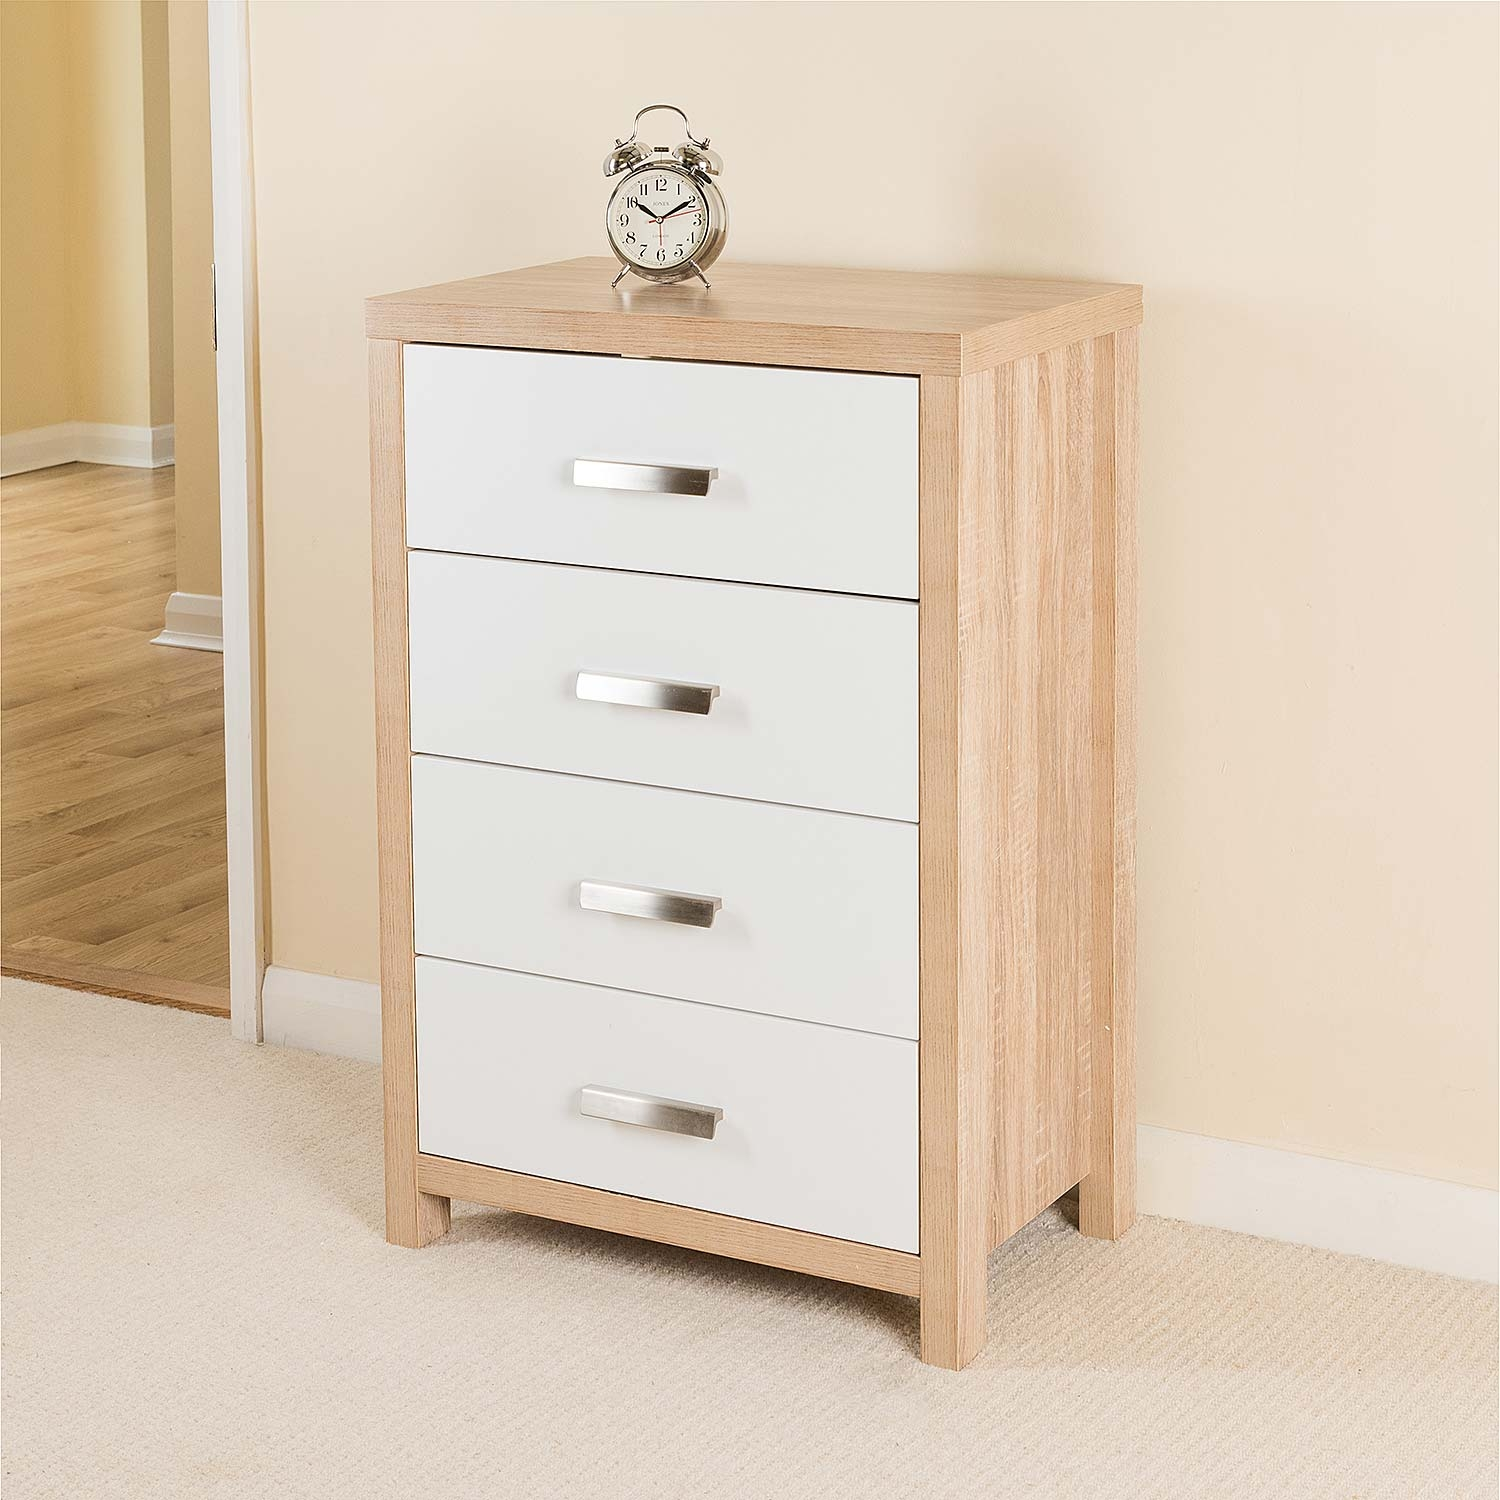 Image of Bianco 4 Drawer Chest, Oak Effect